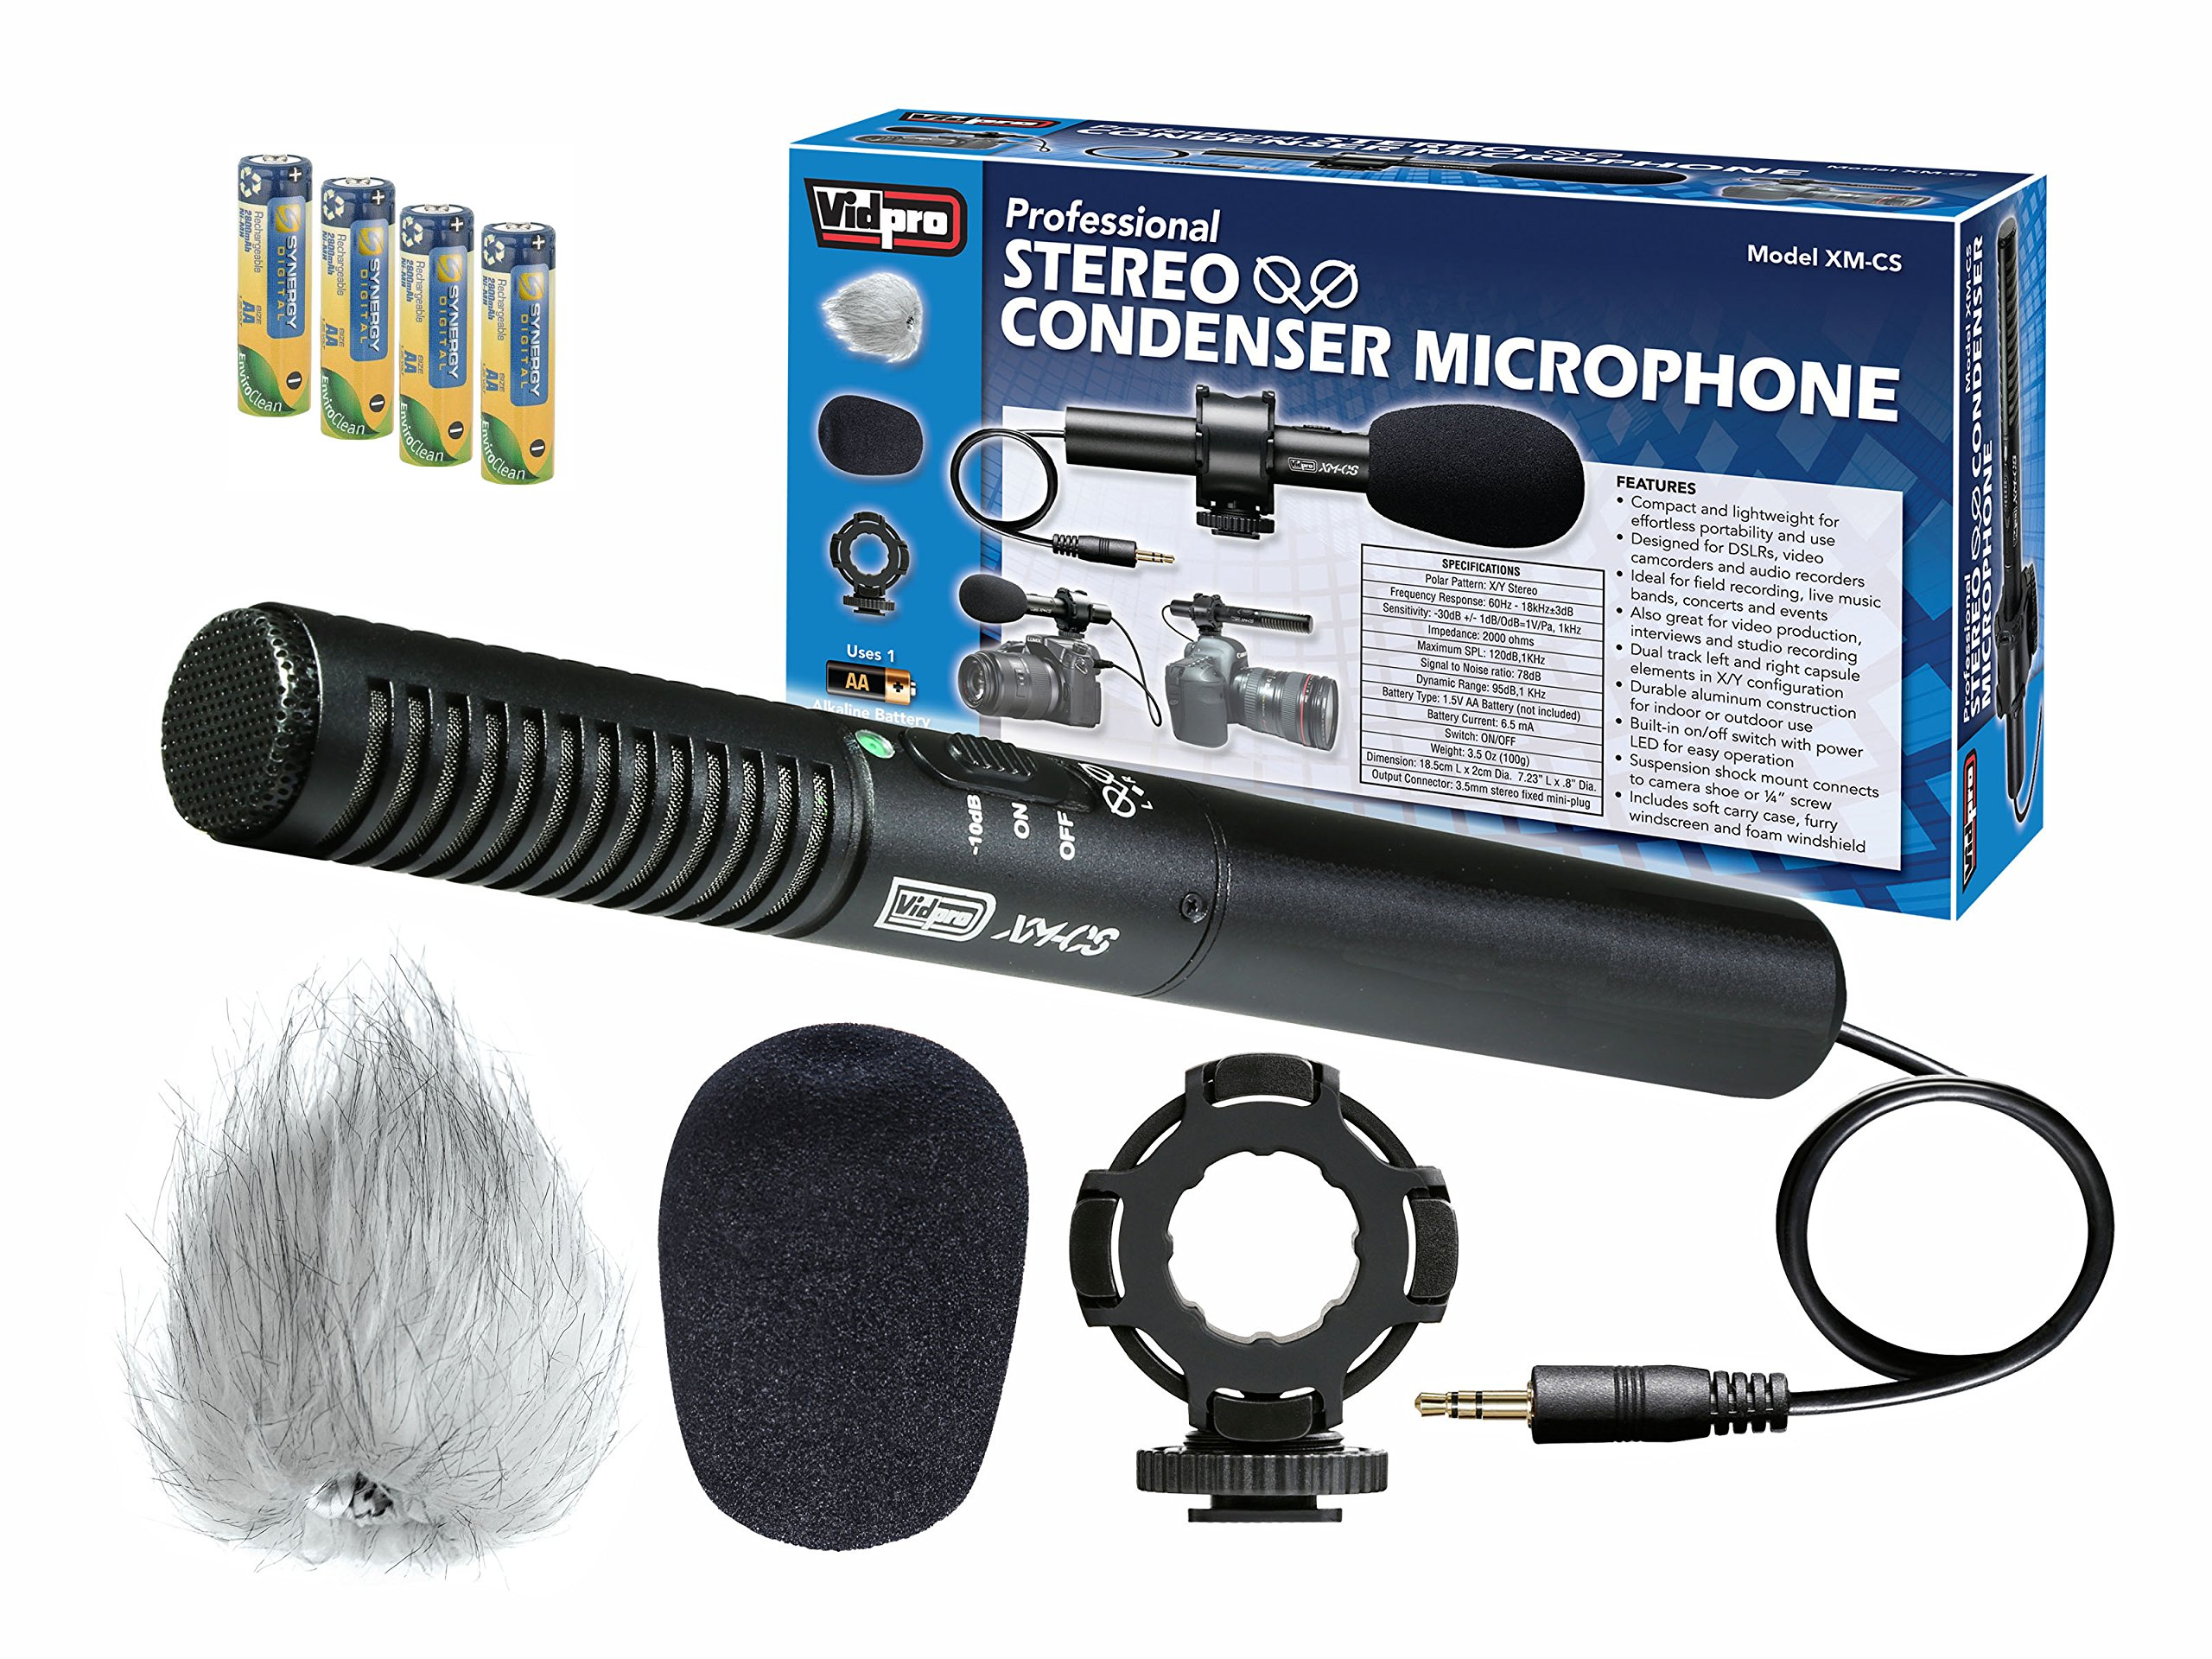 Canon XH-A1 Camcorder External Microphone Vidpro XM-CS Condenser Stereo XY Microphone Kit for DSLR's, video camcorders and audio recorders - With a Pack of 4 AA NiMH Rechargable Batteries - 2800mAh